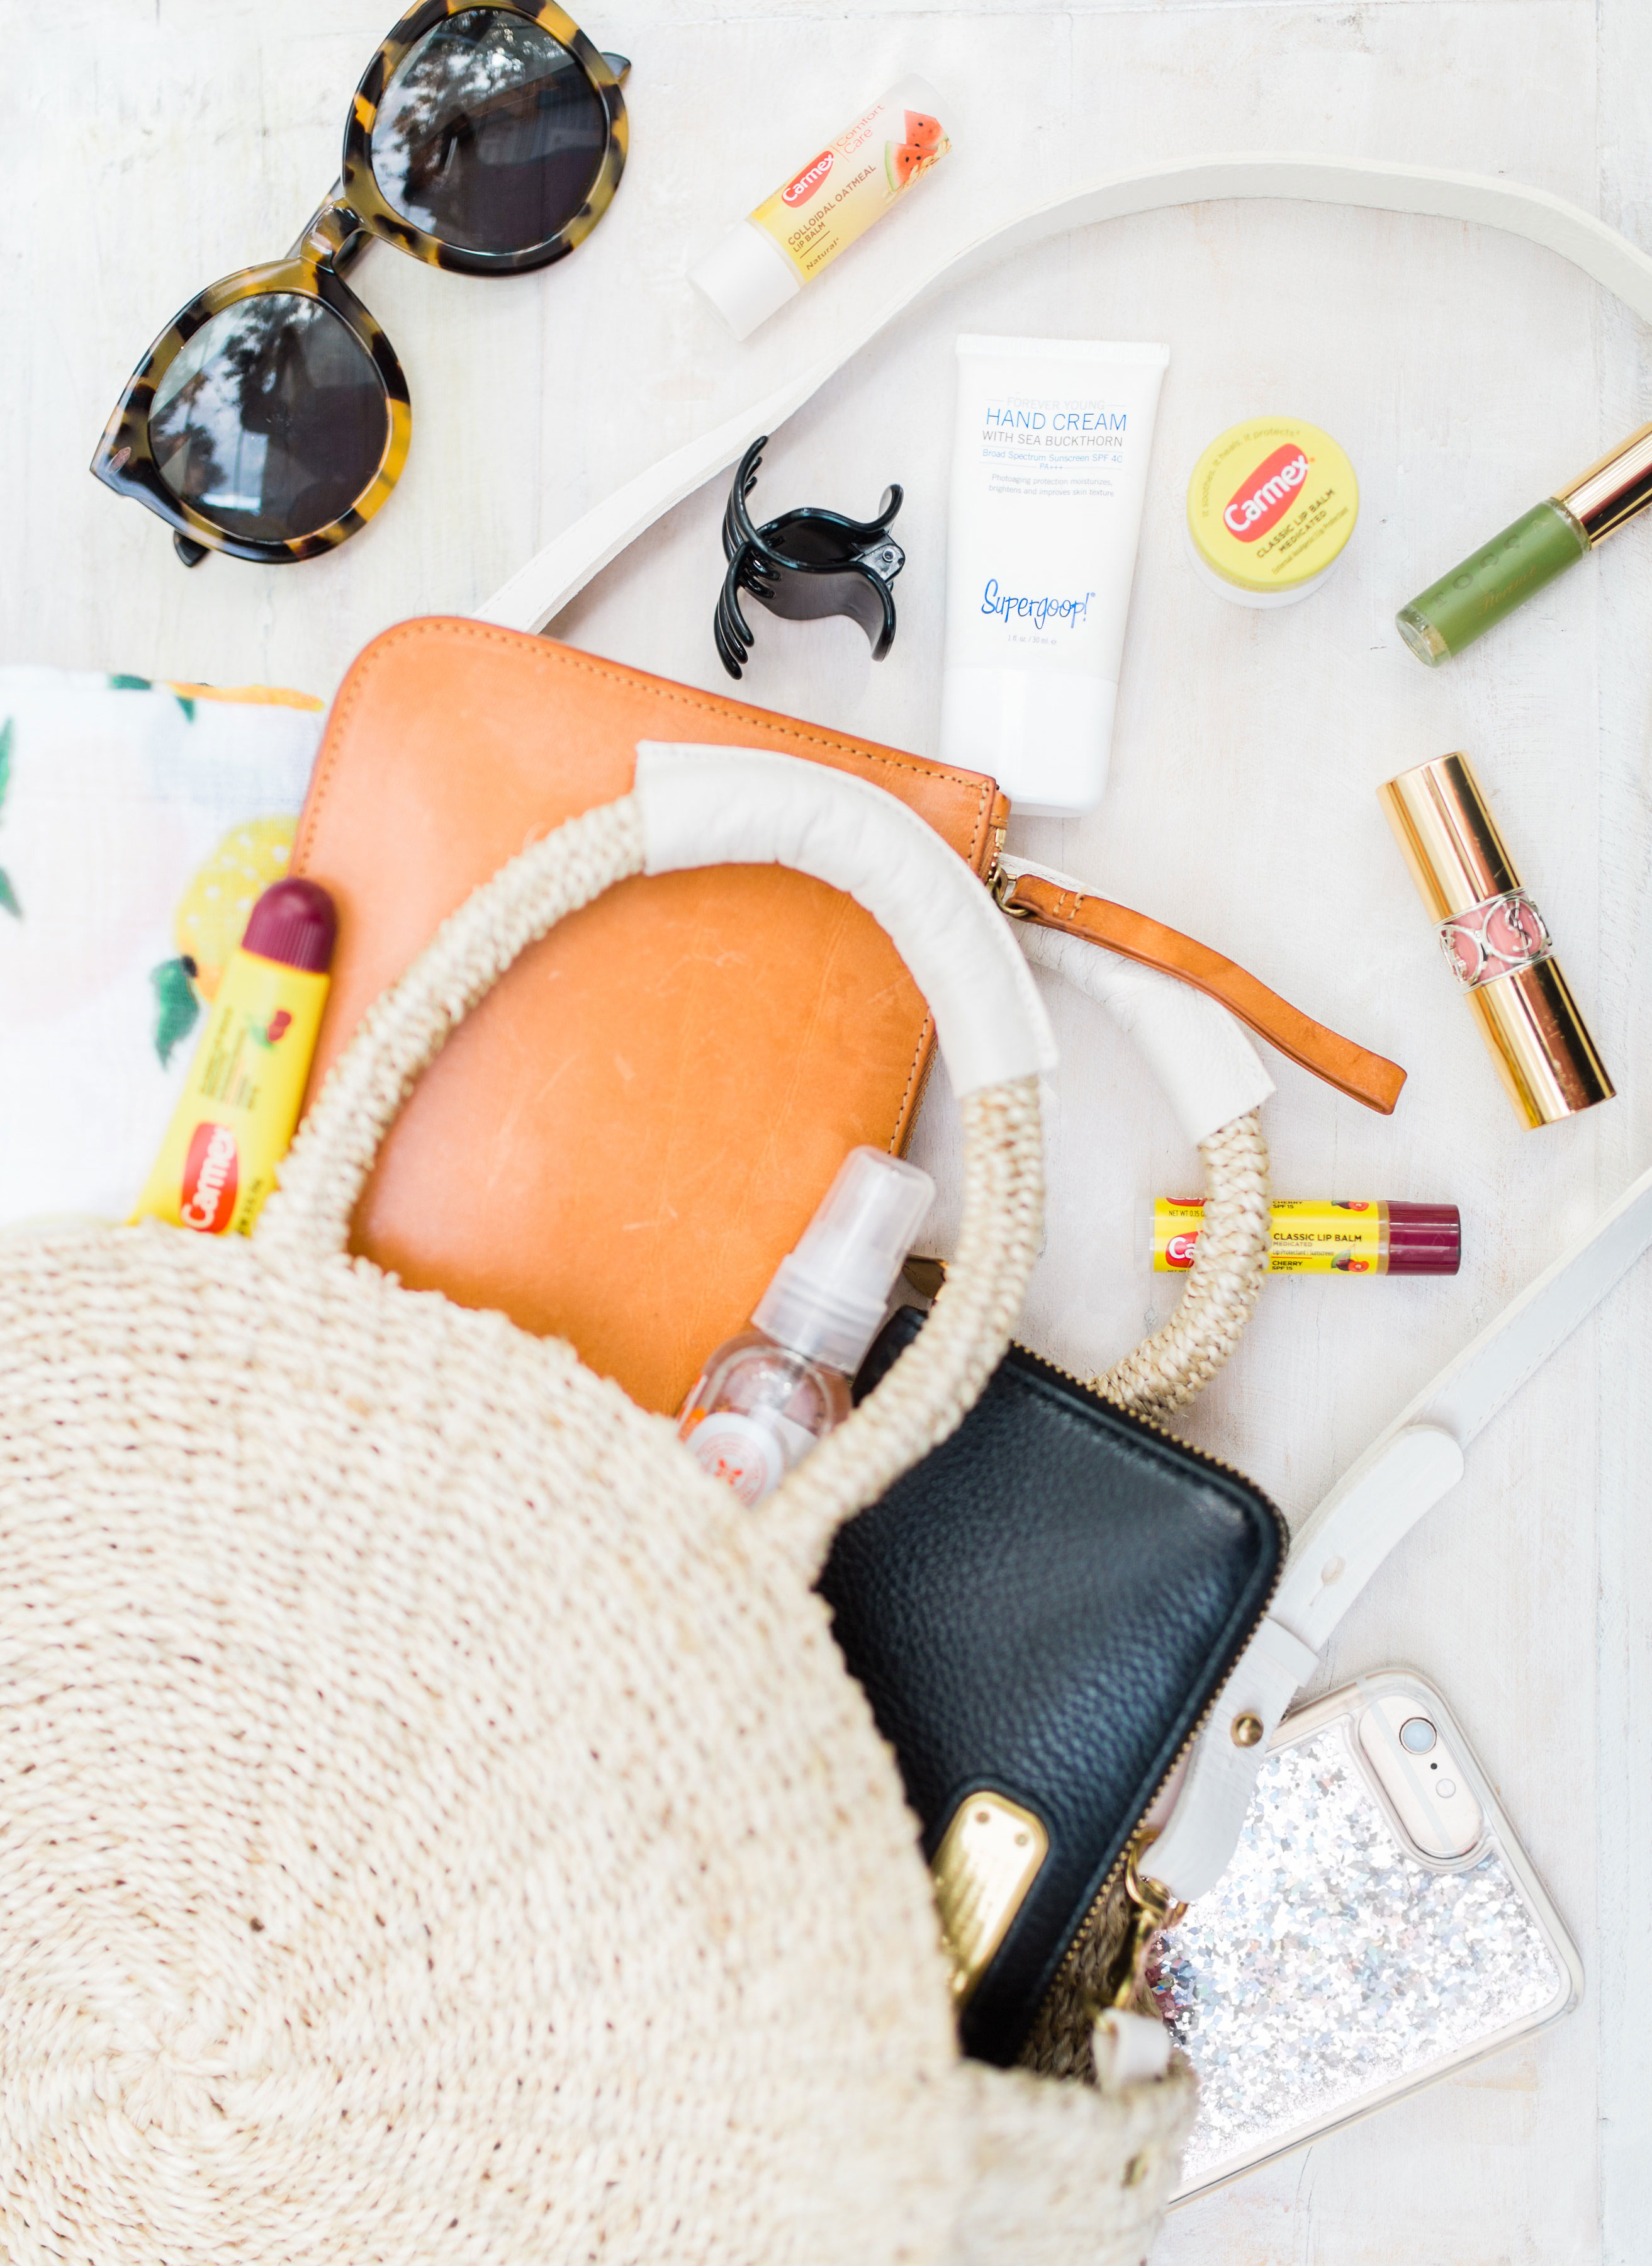 Making the Transition From Summer to Fall: 5 Beauty Must Haves by NC beauty blogger Glitter, Inc.